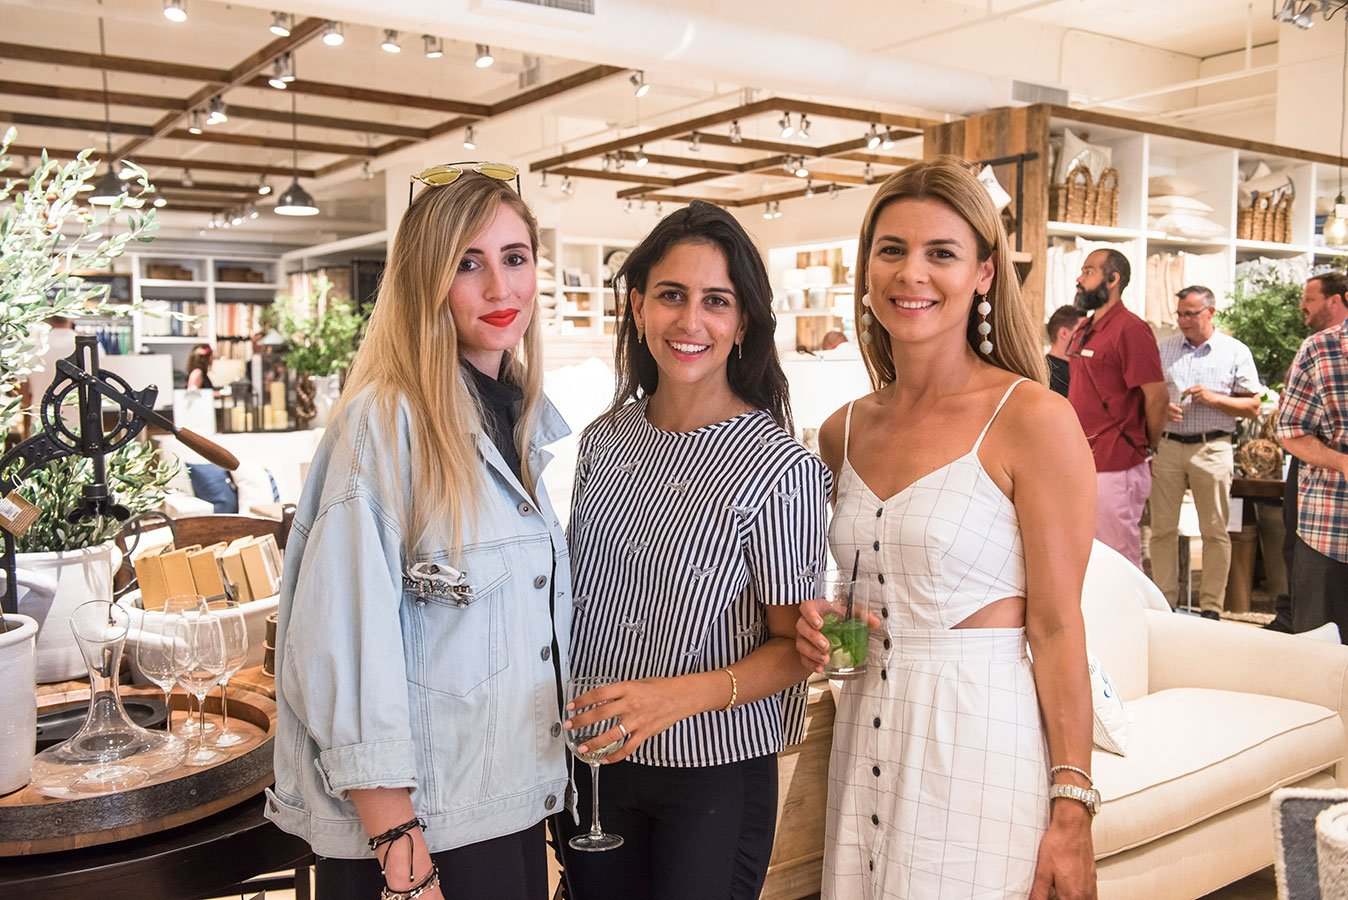 Adriana Epelbaum, Heymama's Ailyn Easyag and Bercu Uygur at the Pottery Barn Lincoln Road Grand Opening Event